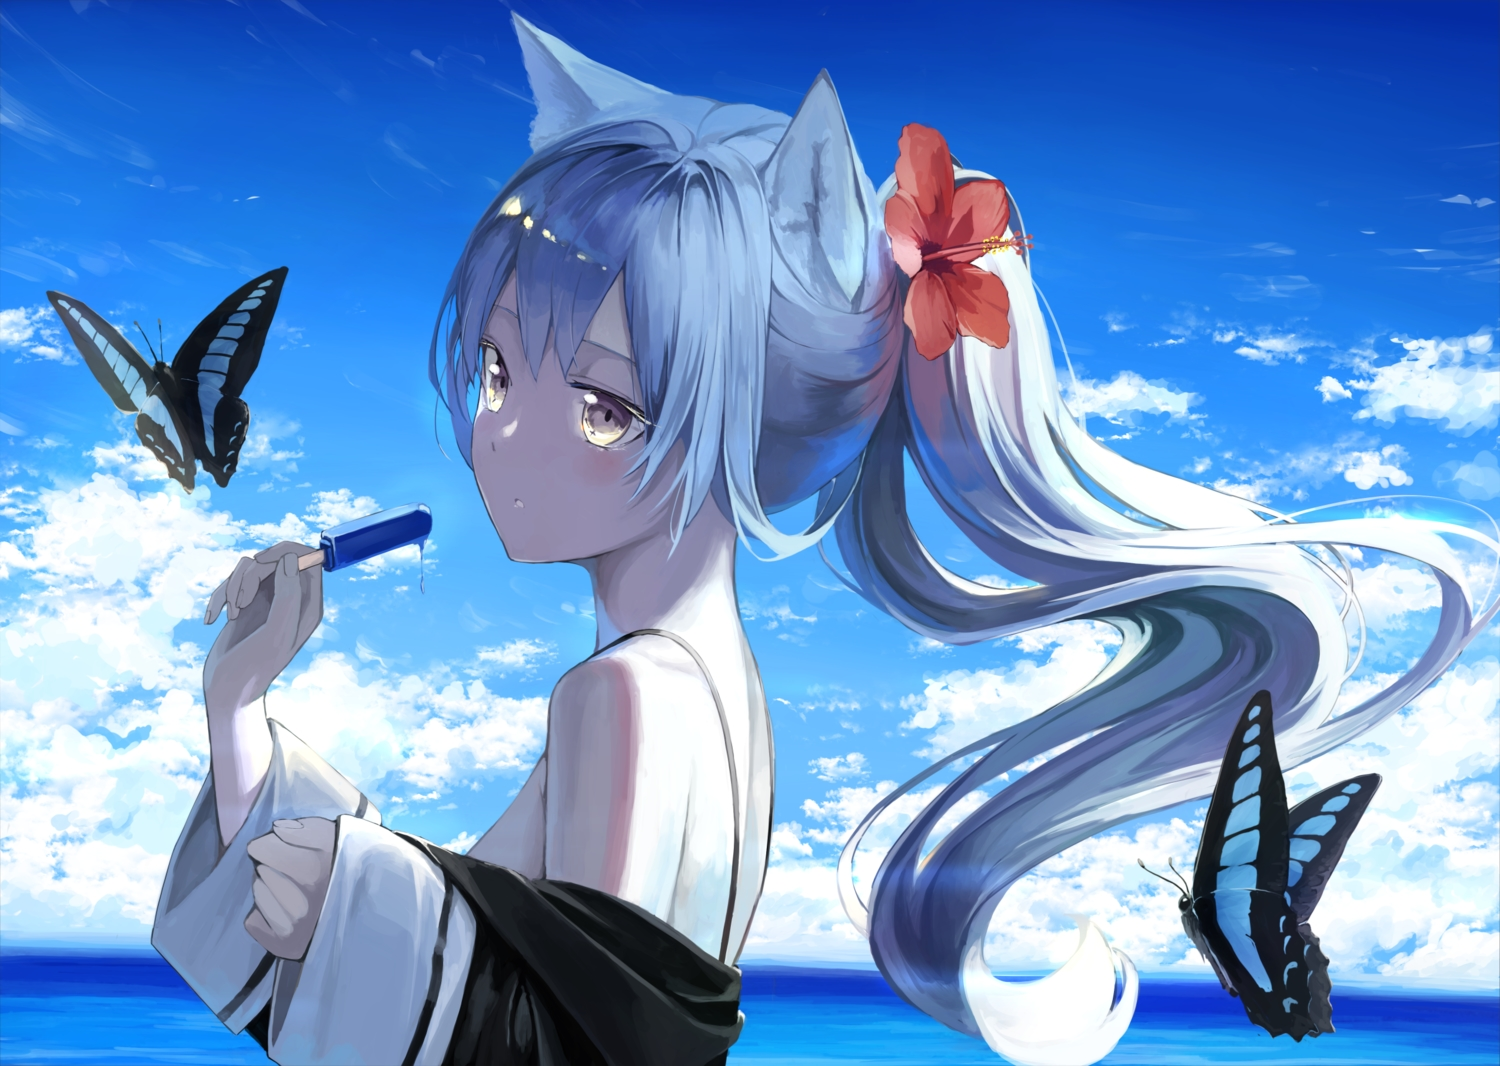 animal_ears blue_hair brown_eyes butterfly clouds long_hair mikisai original ponytail popsicle sky